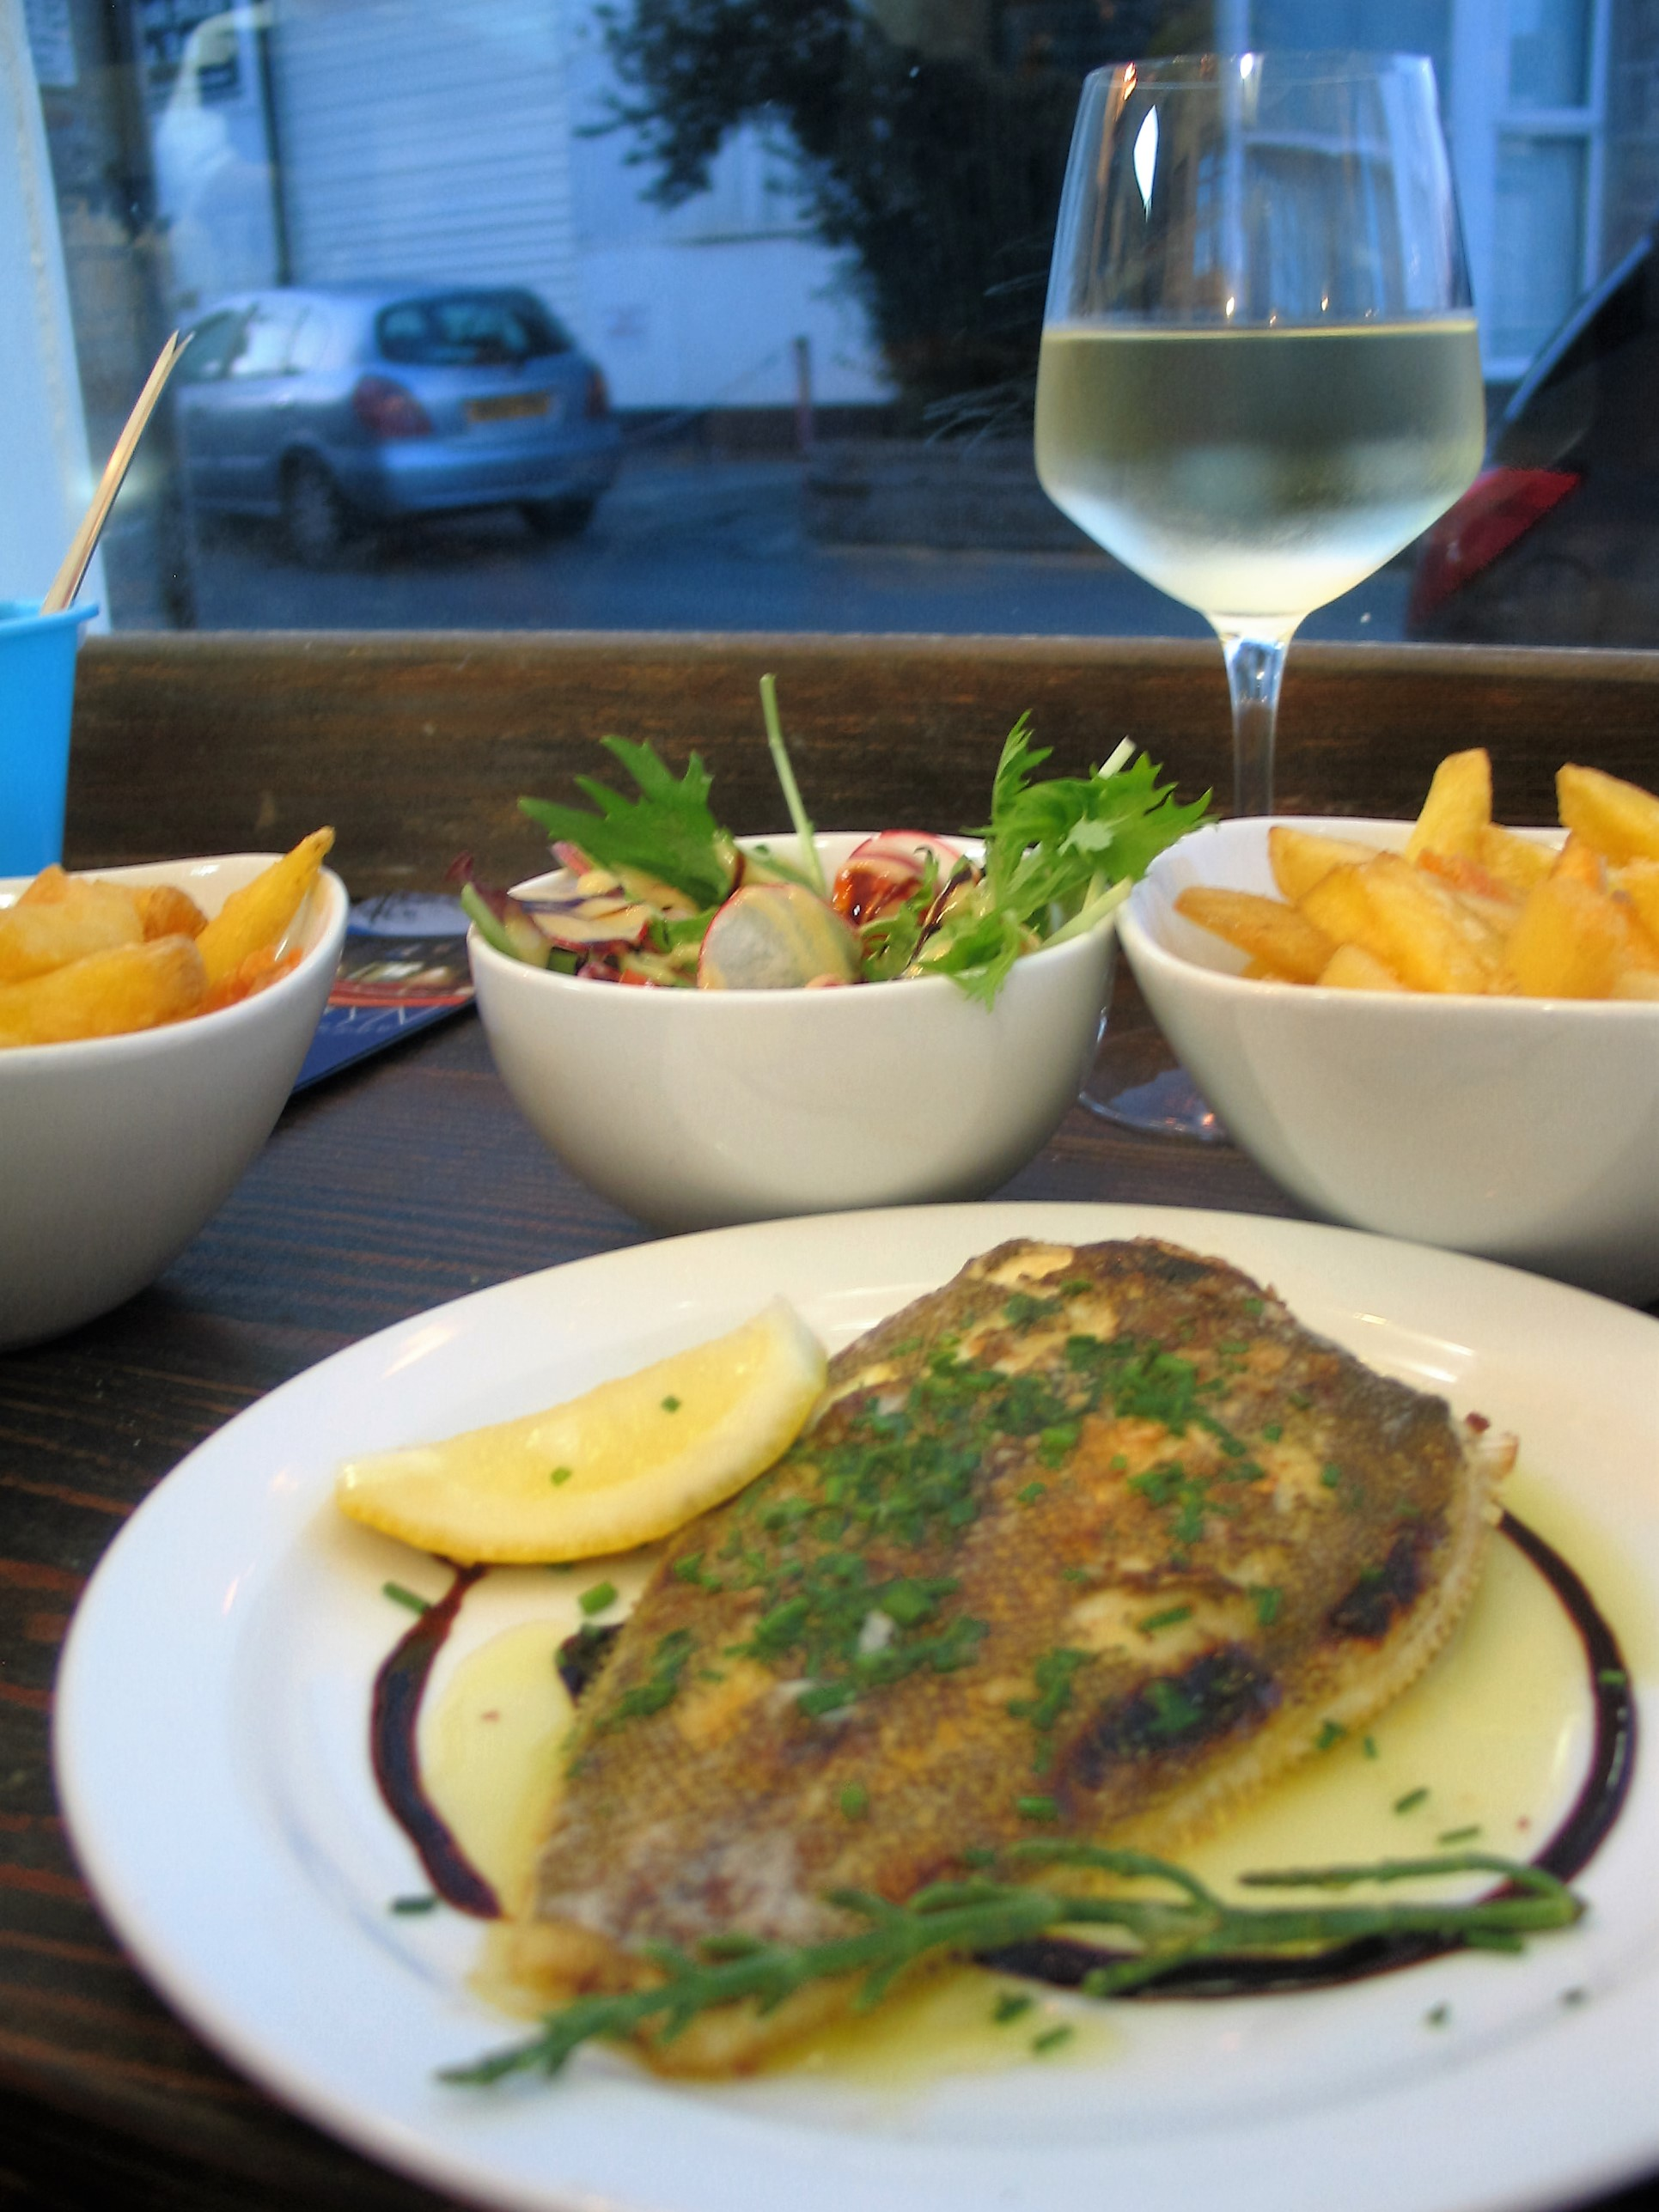 Mounts bay Sole accompanied by chips and salad and a glass of chilled wine of ocurse